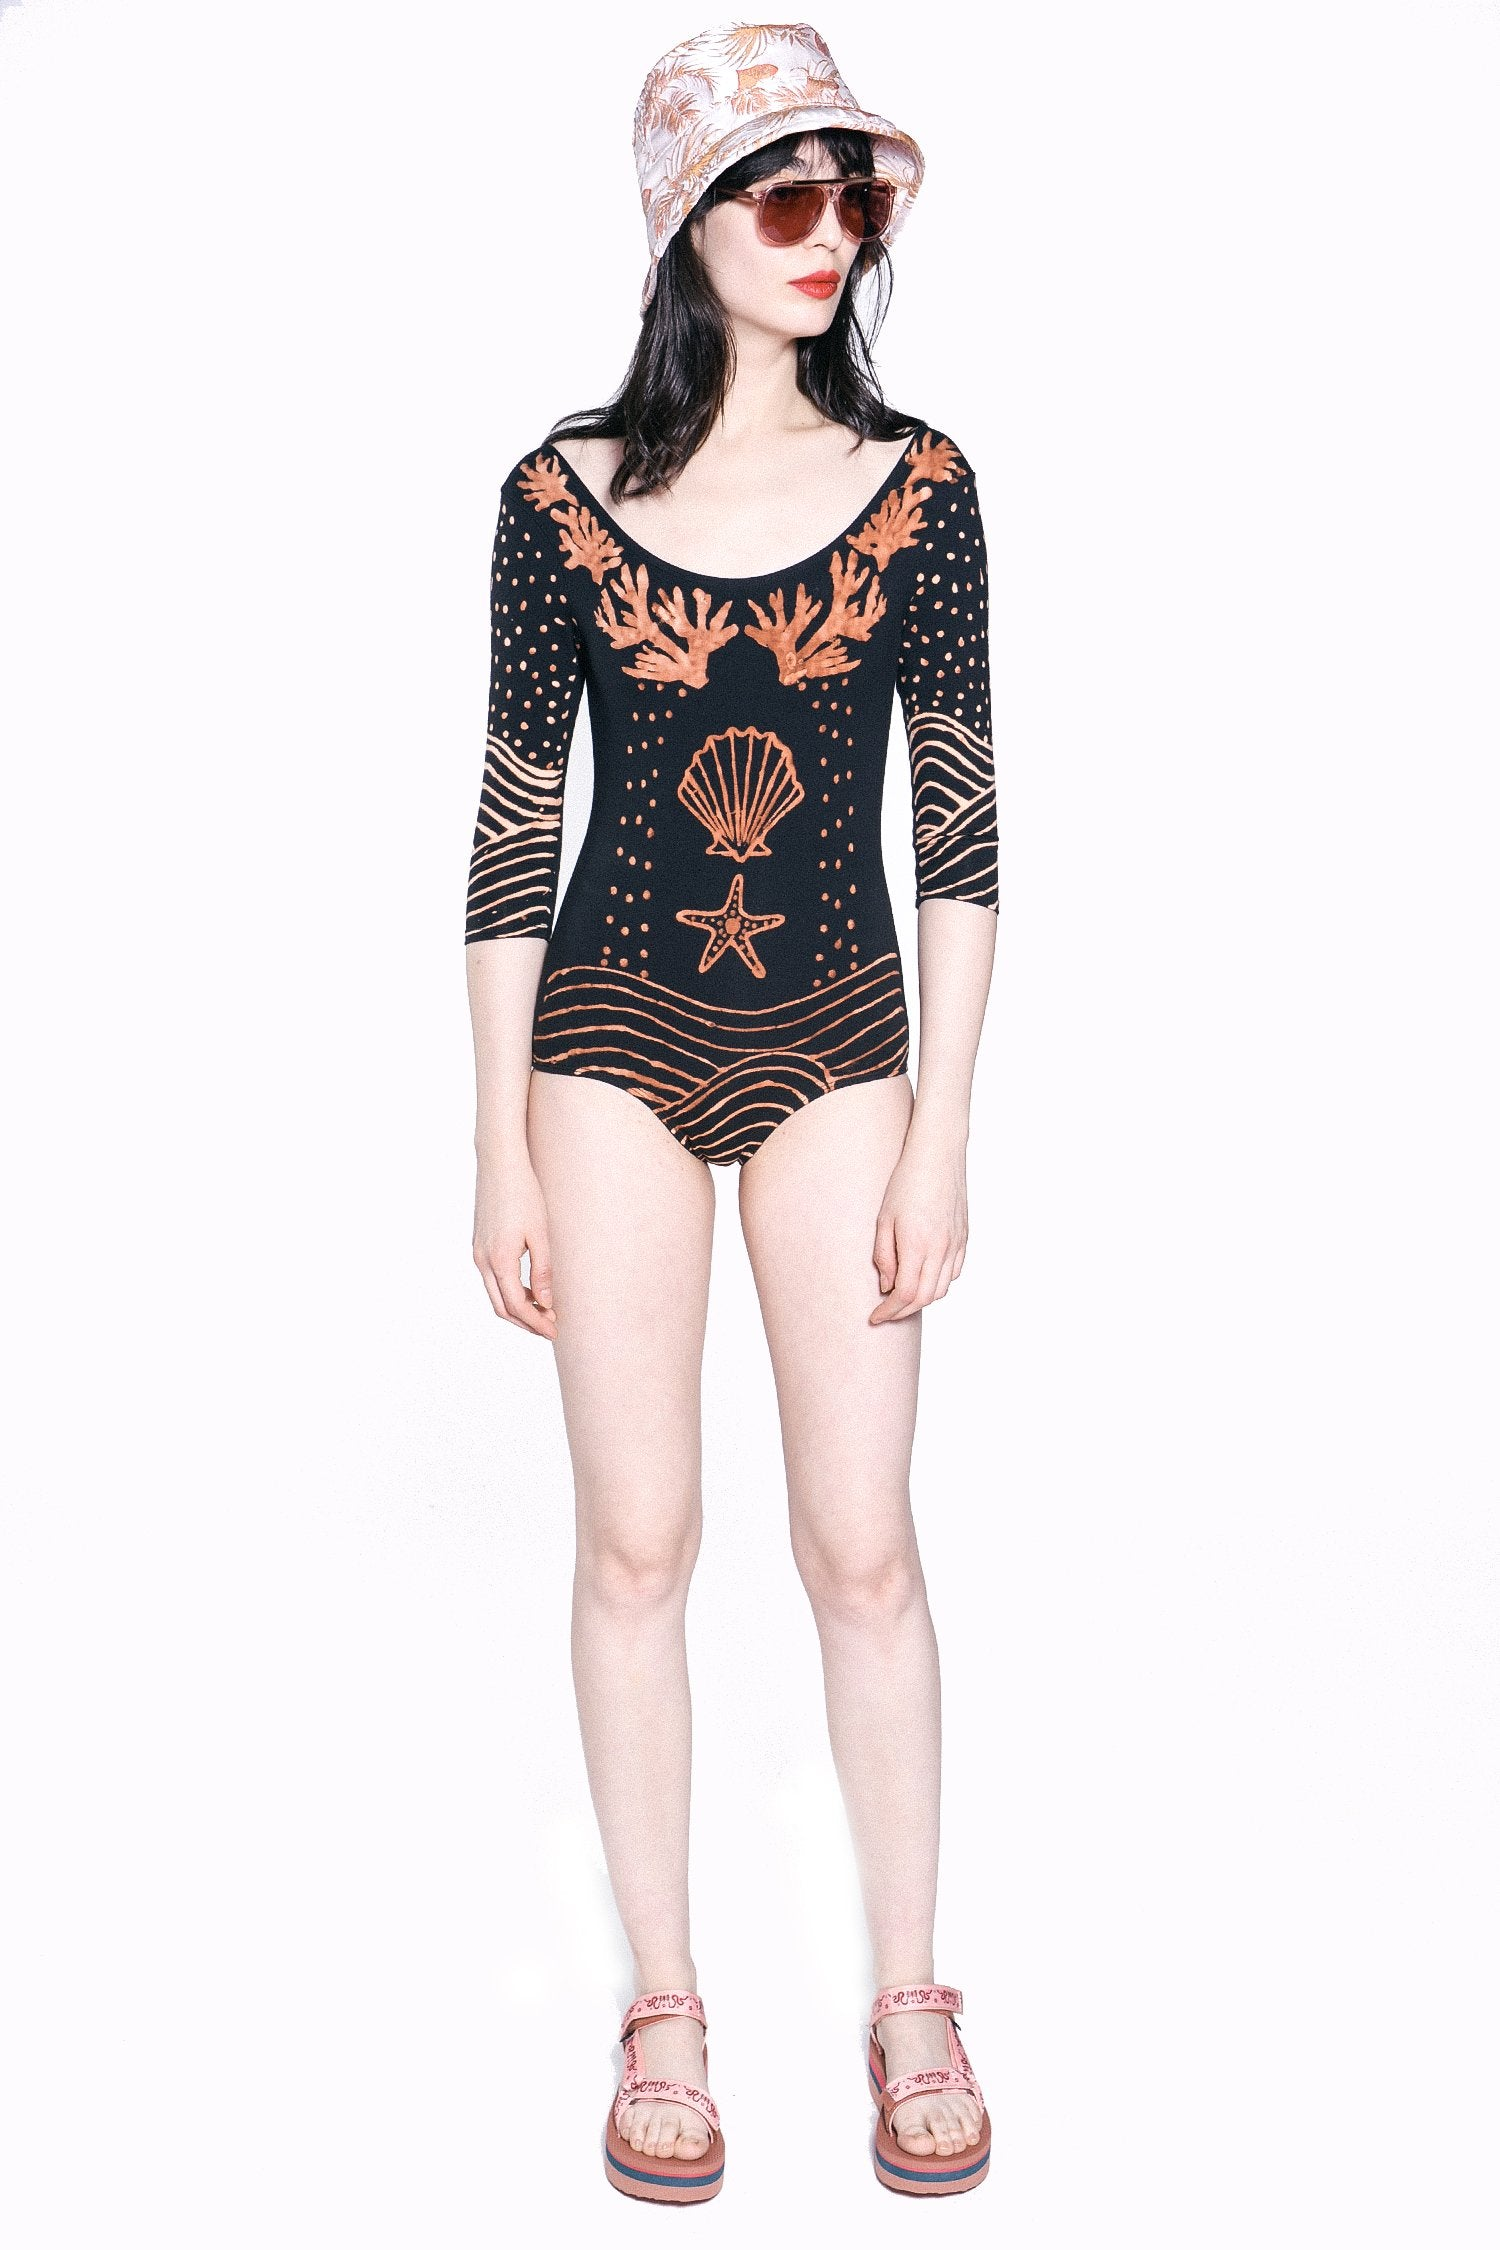 Brass Arrow X Anna Sui Sea Shell Swimsuit With Sleeve